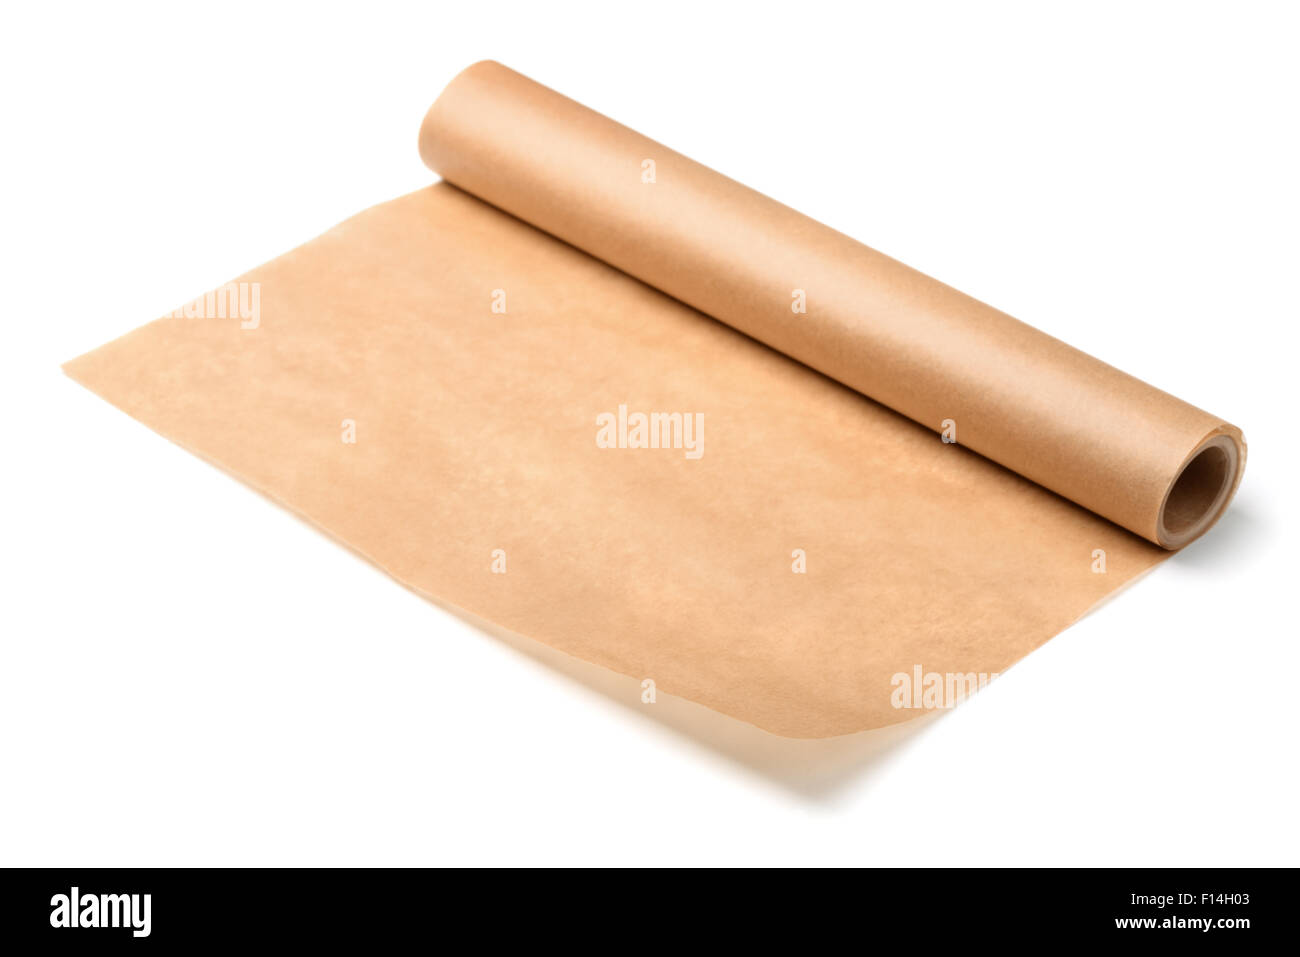 how to cut baking paper